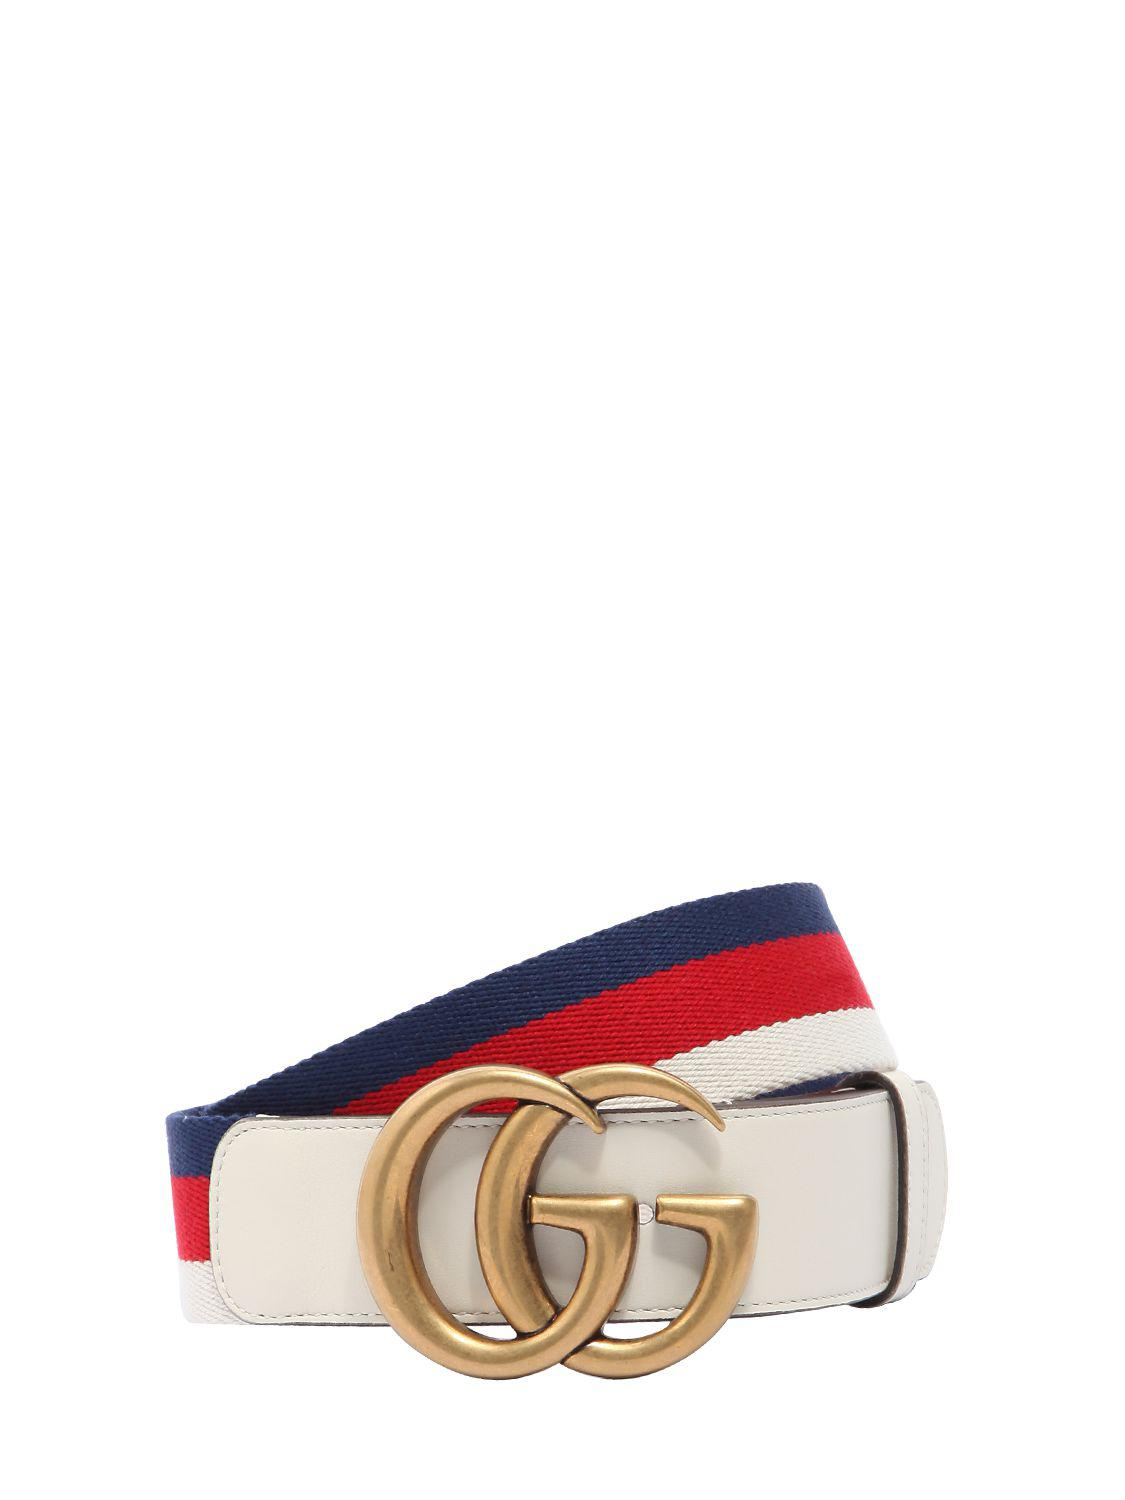 8747a2b4e Gucci 40mm Gg Marmont Web & Leather Belt in Blue - Lyst